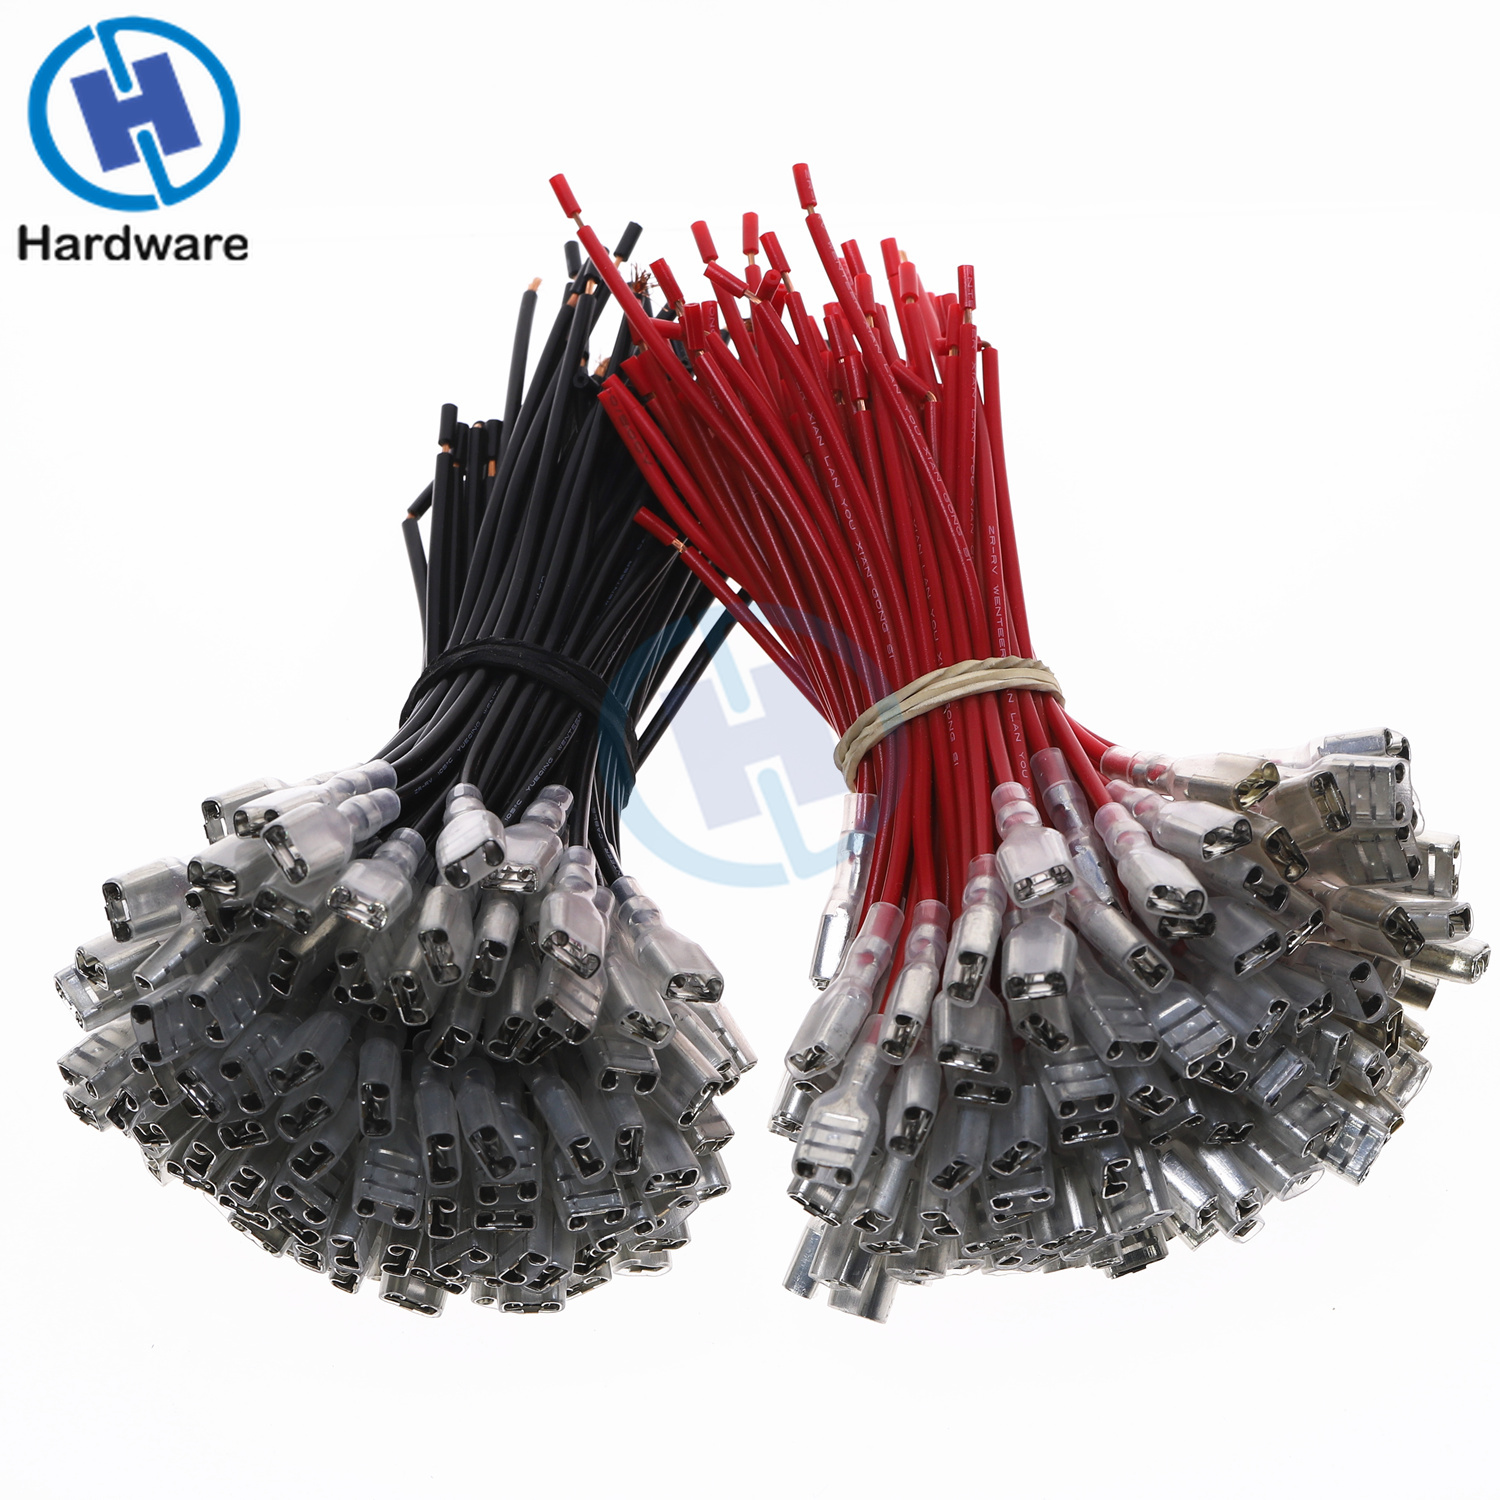 10Pcs Red Black 0 5mm2 Cable Wire Pressure Terminal Connector 2 8mm 4 8mm 6 3mm Plug Spring in Connectors from Lights Lighting